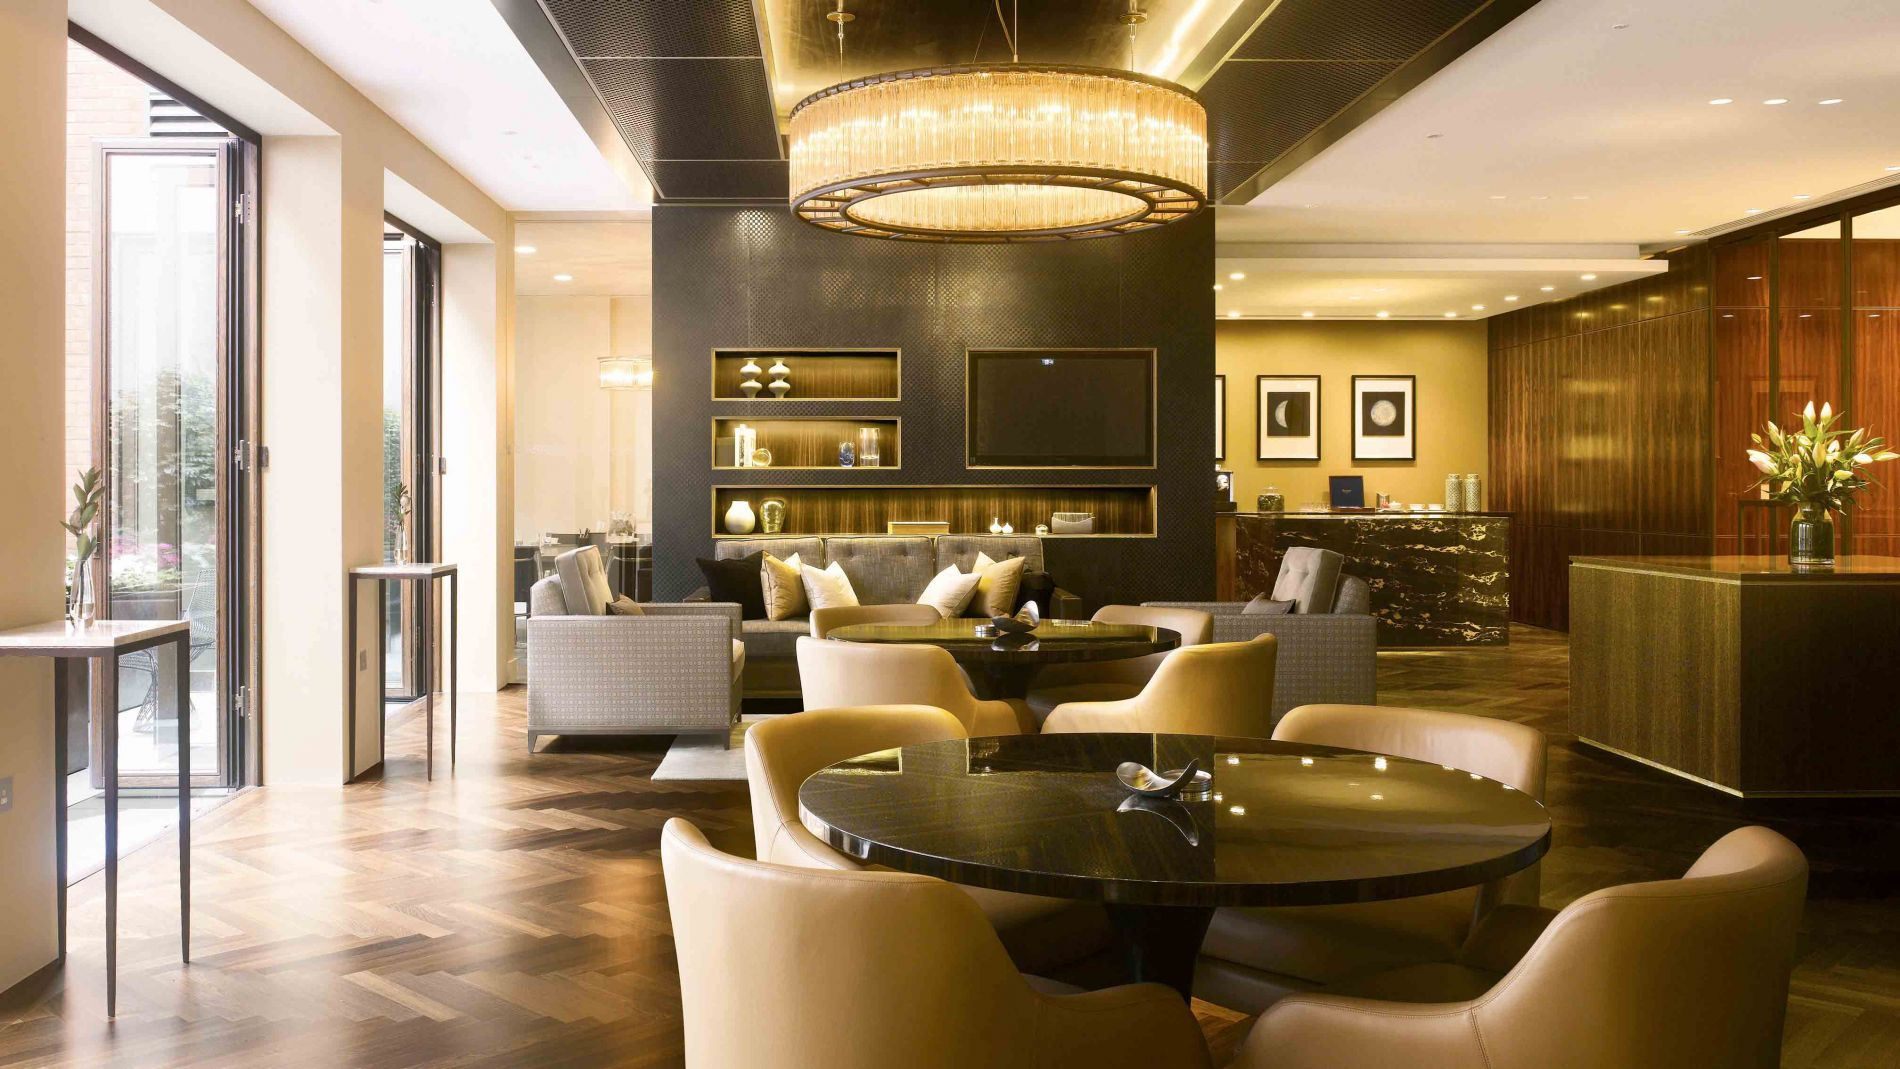 Metrica luxury residential interior